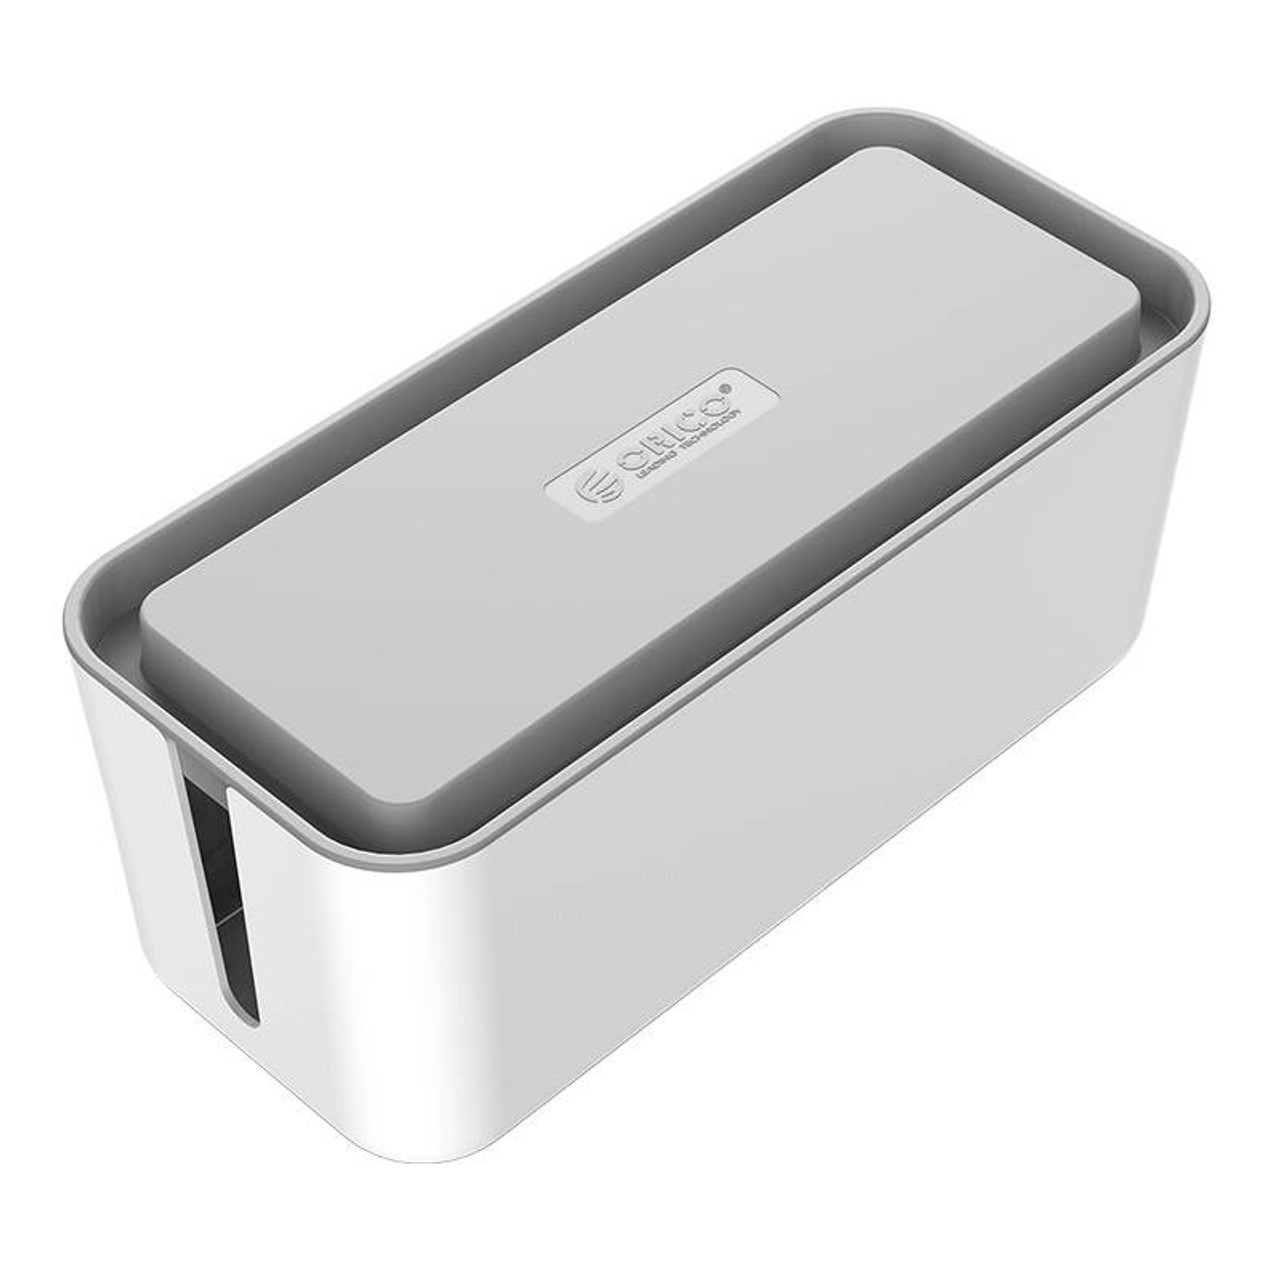 Image for Orico Storage Box for Surge Protectors and Power Boards - Grey/White CX Computer Superstore